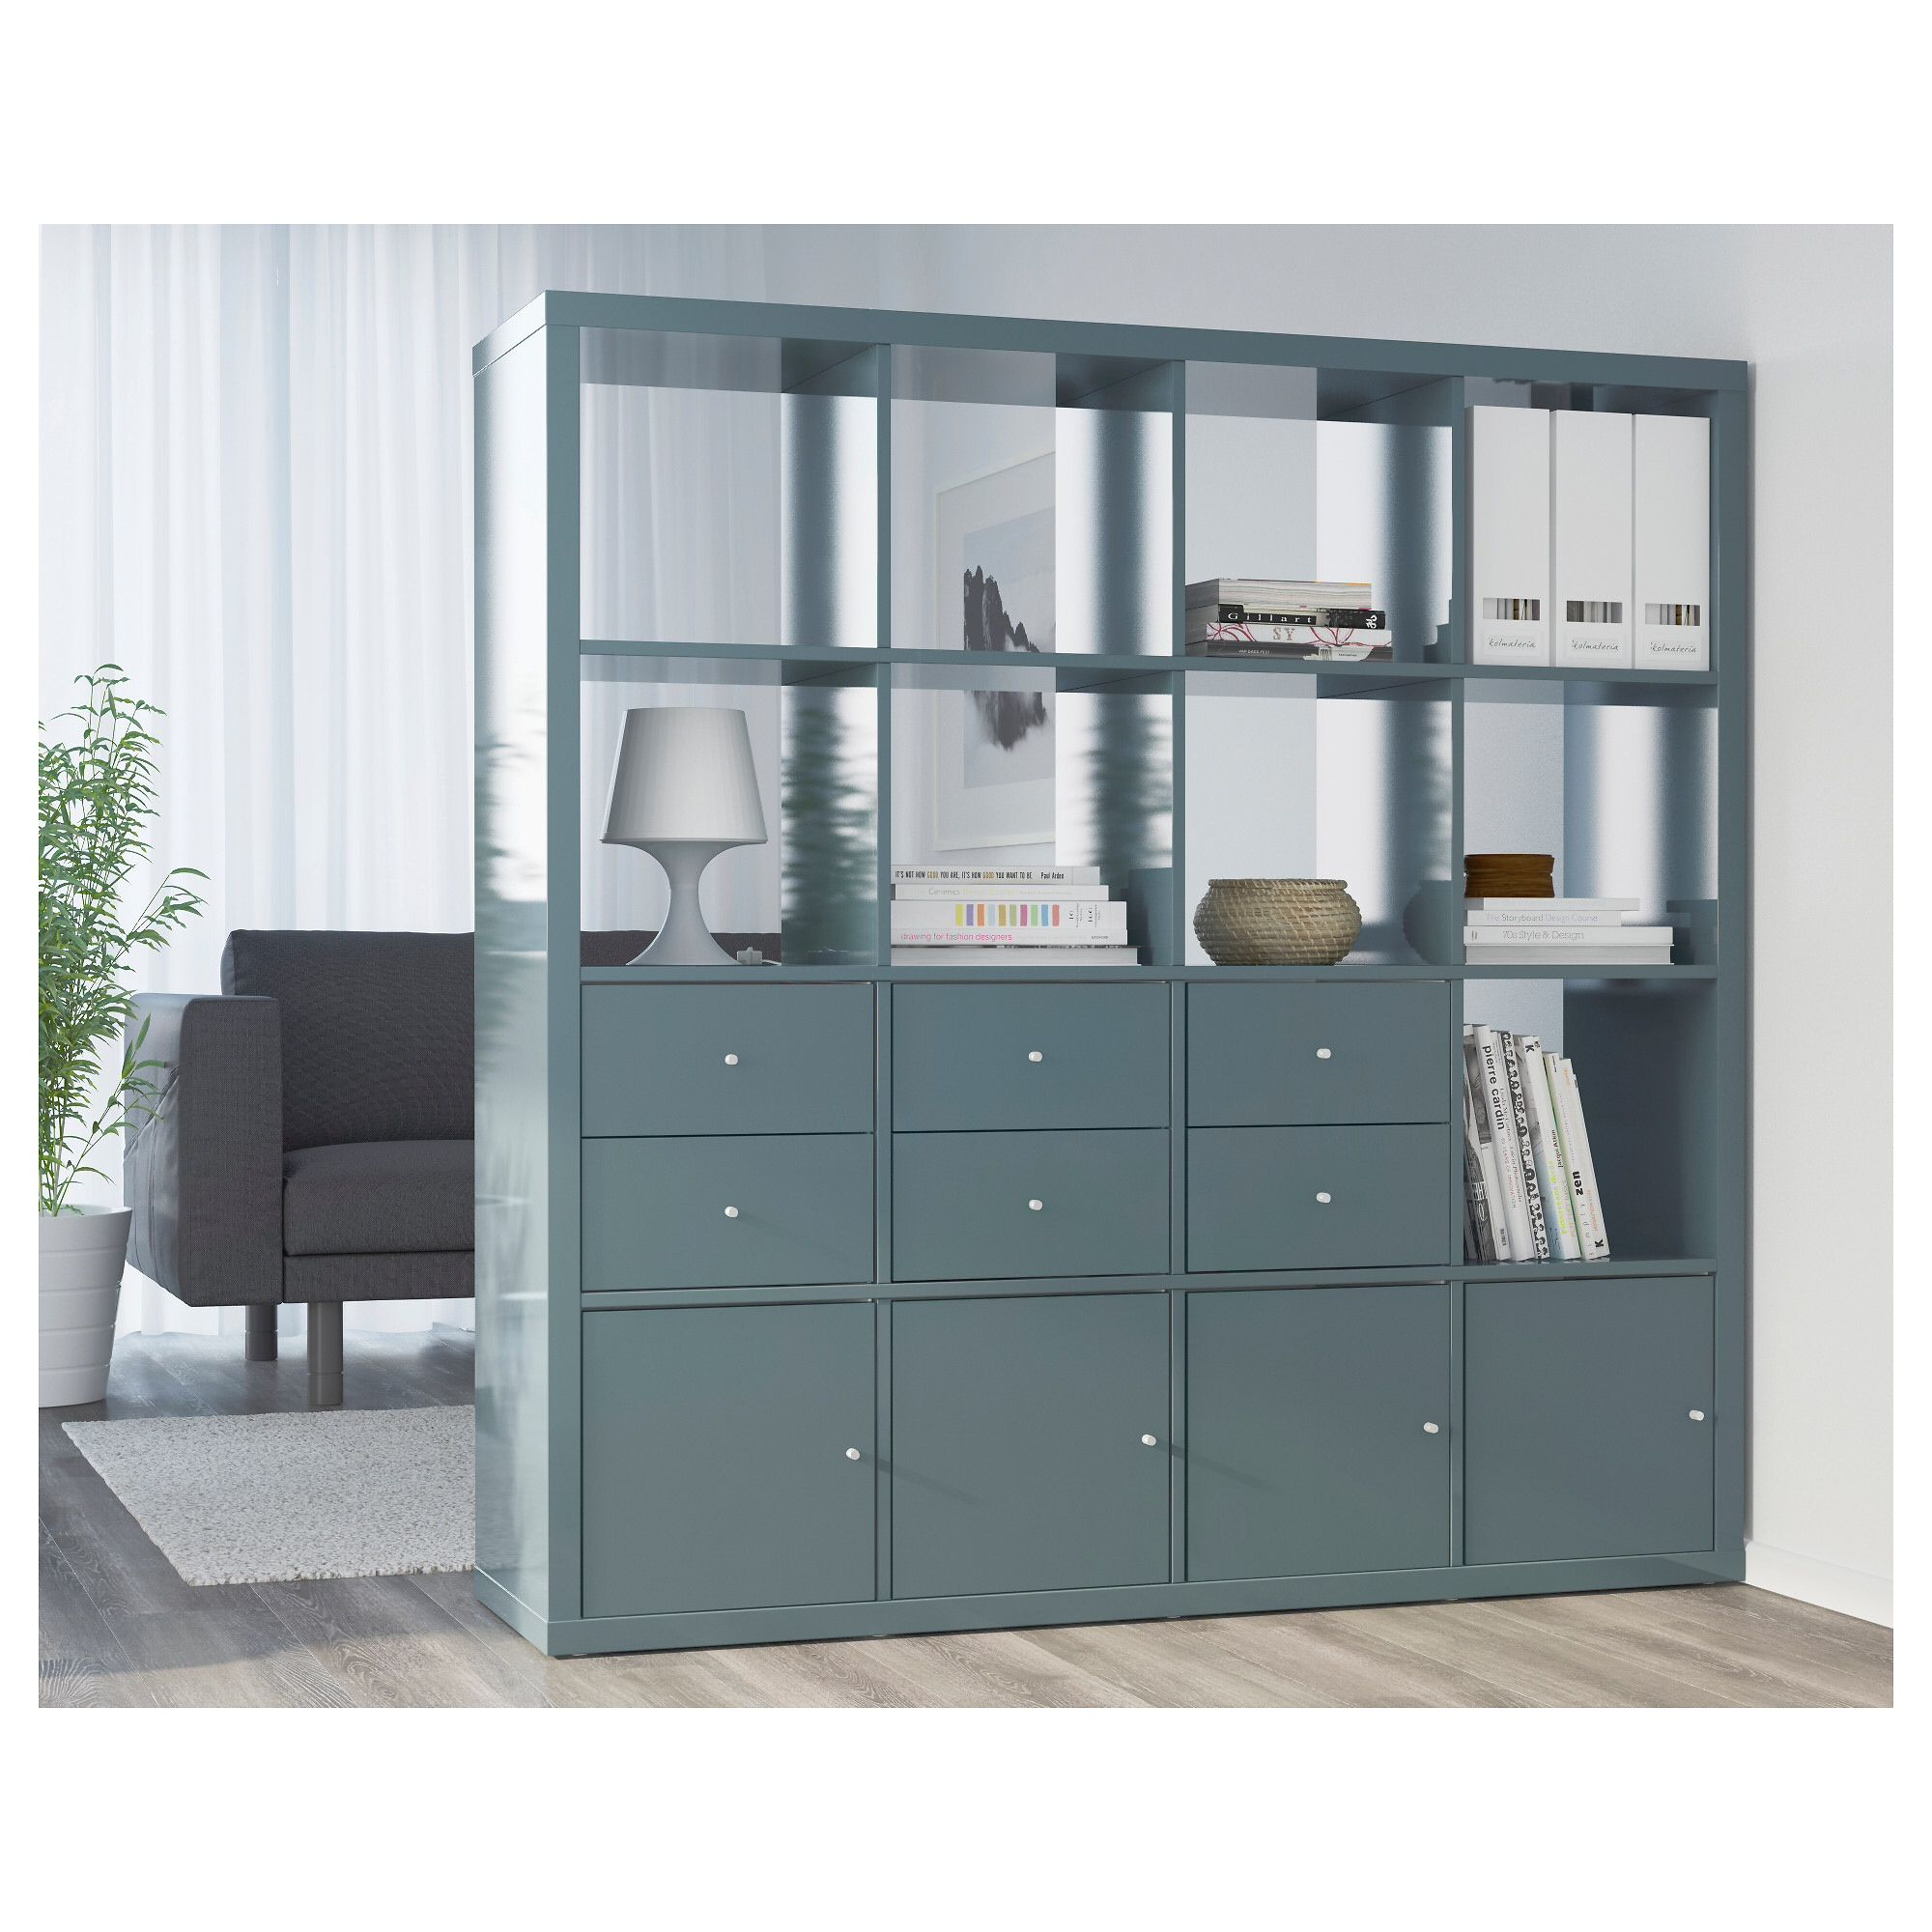 ikea kallax high gloss grey turquoise shelving unit | playroom/spare